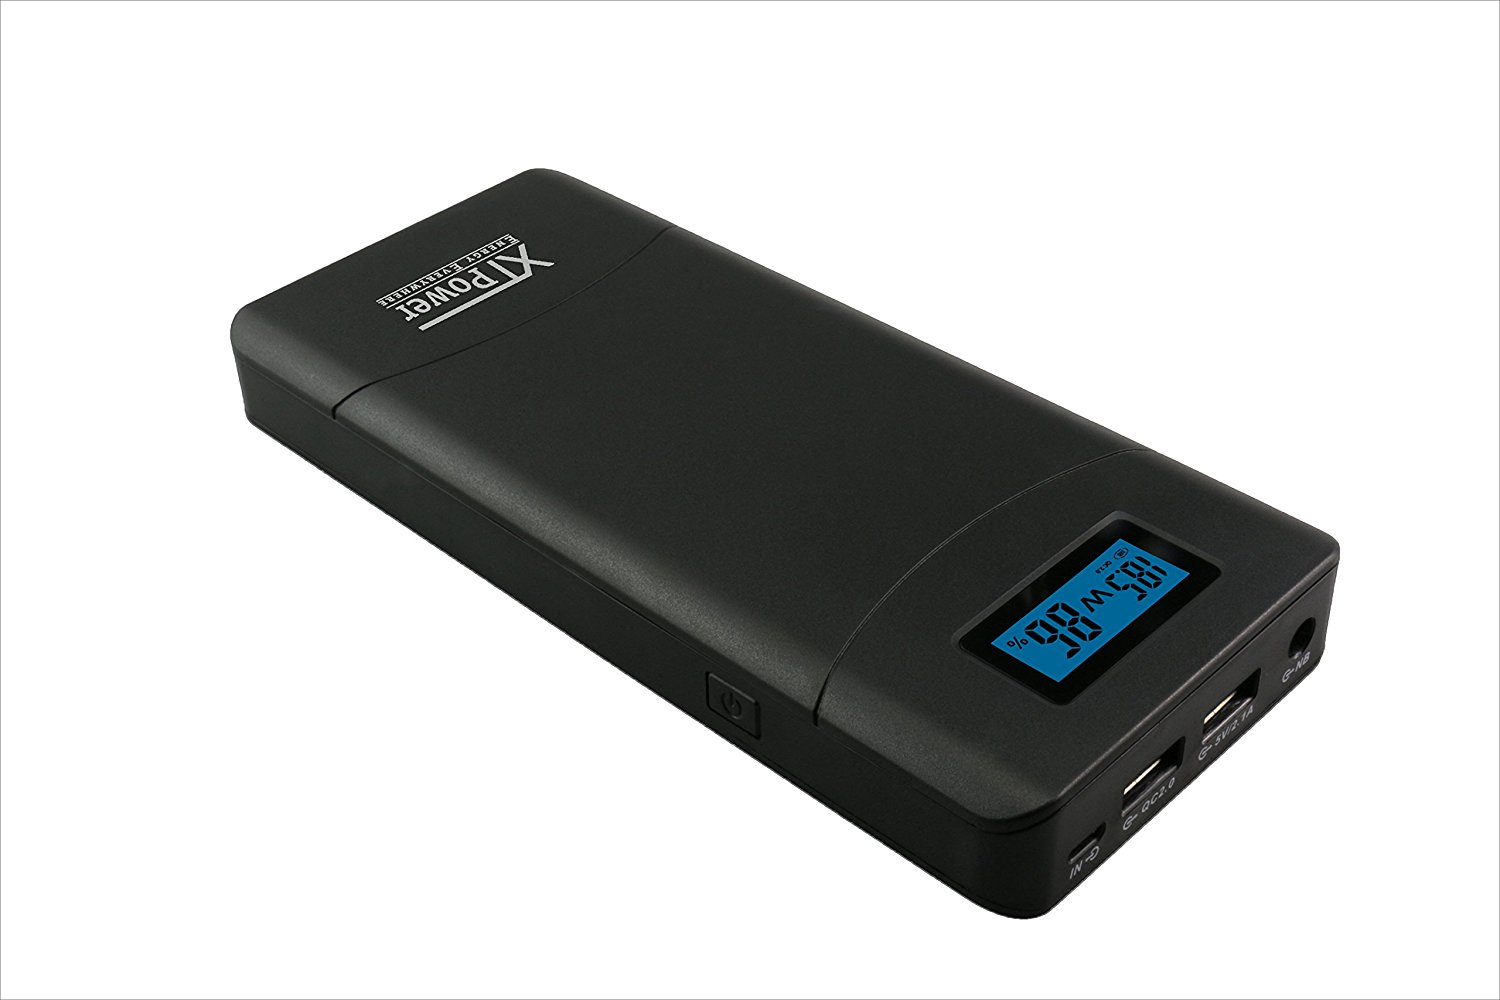 Powerbank Preis Powerbank Preis Energie Licht And Energie Electronic Gadgets Outdoor